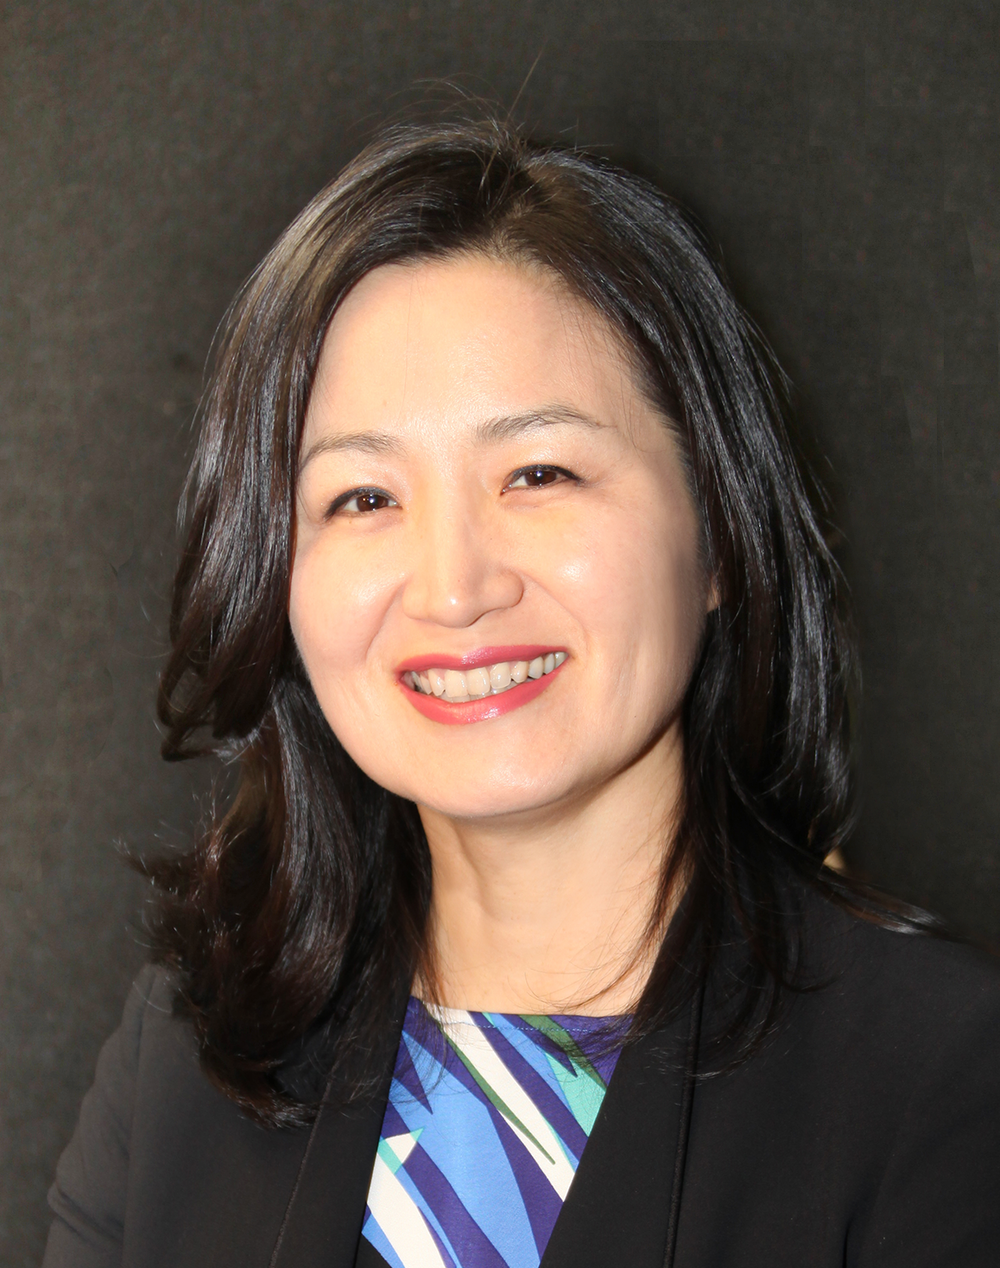 Ms. Chang, the Founder and Managing Member of Judy Chang Law Firm